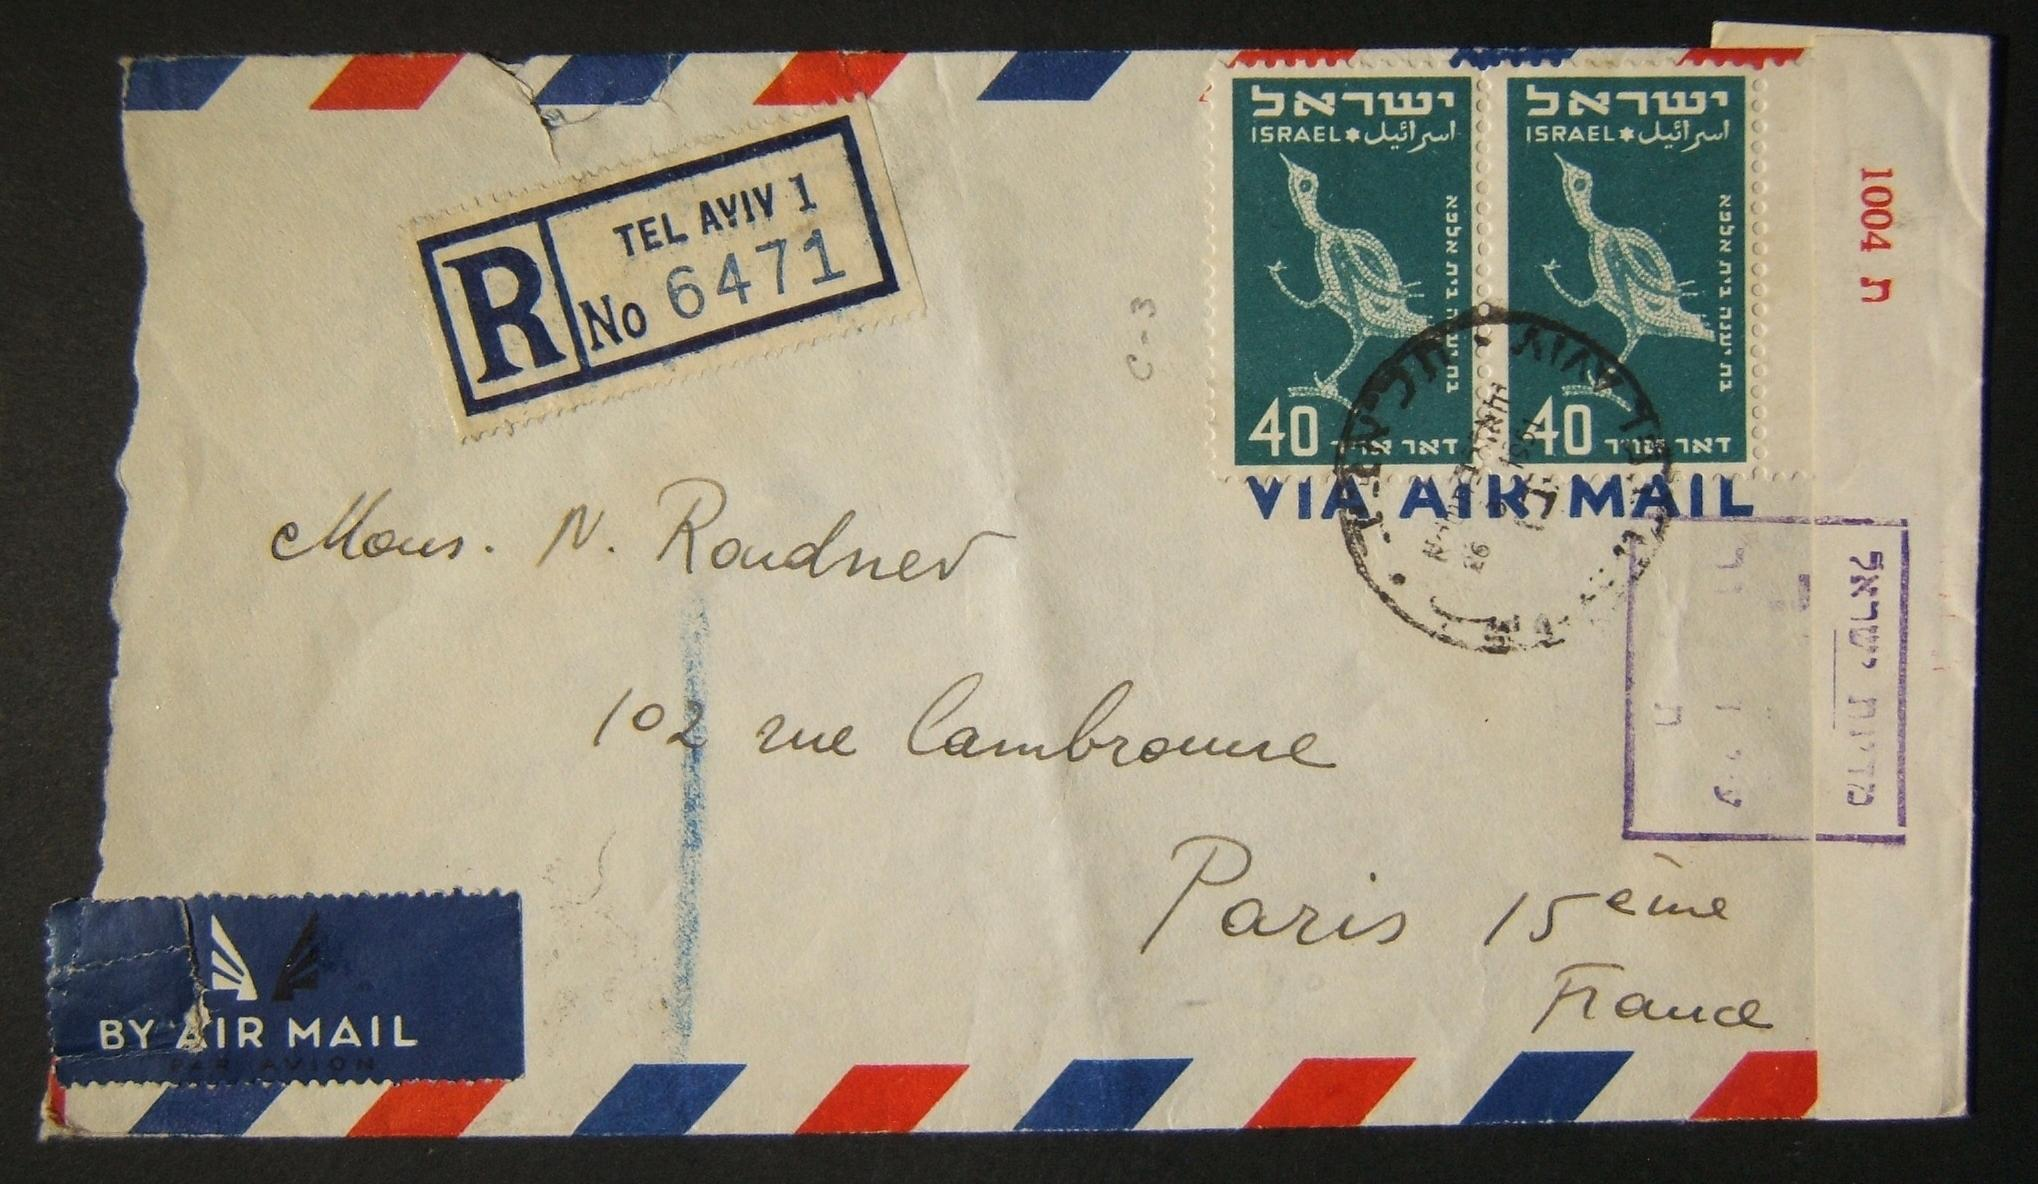 1950 1st airmail / PO's, rates & routes: 26-6-1951 registered airmail cover ex TLV to PARIS franked 80pr at the FA-2a period rate (40pr letter + 25pr registration, with 15pr overch